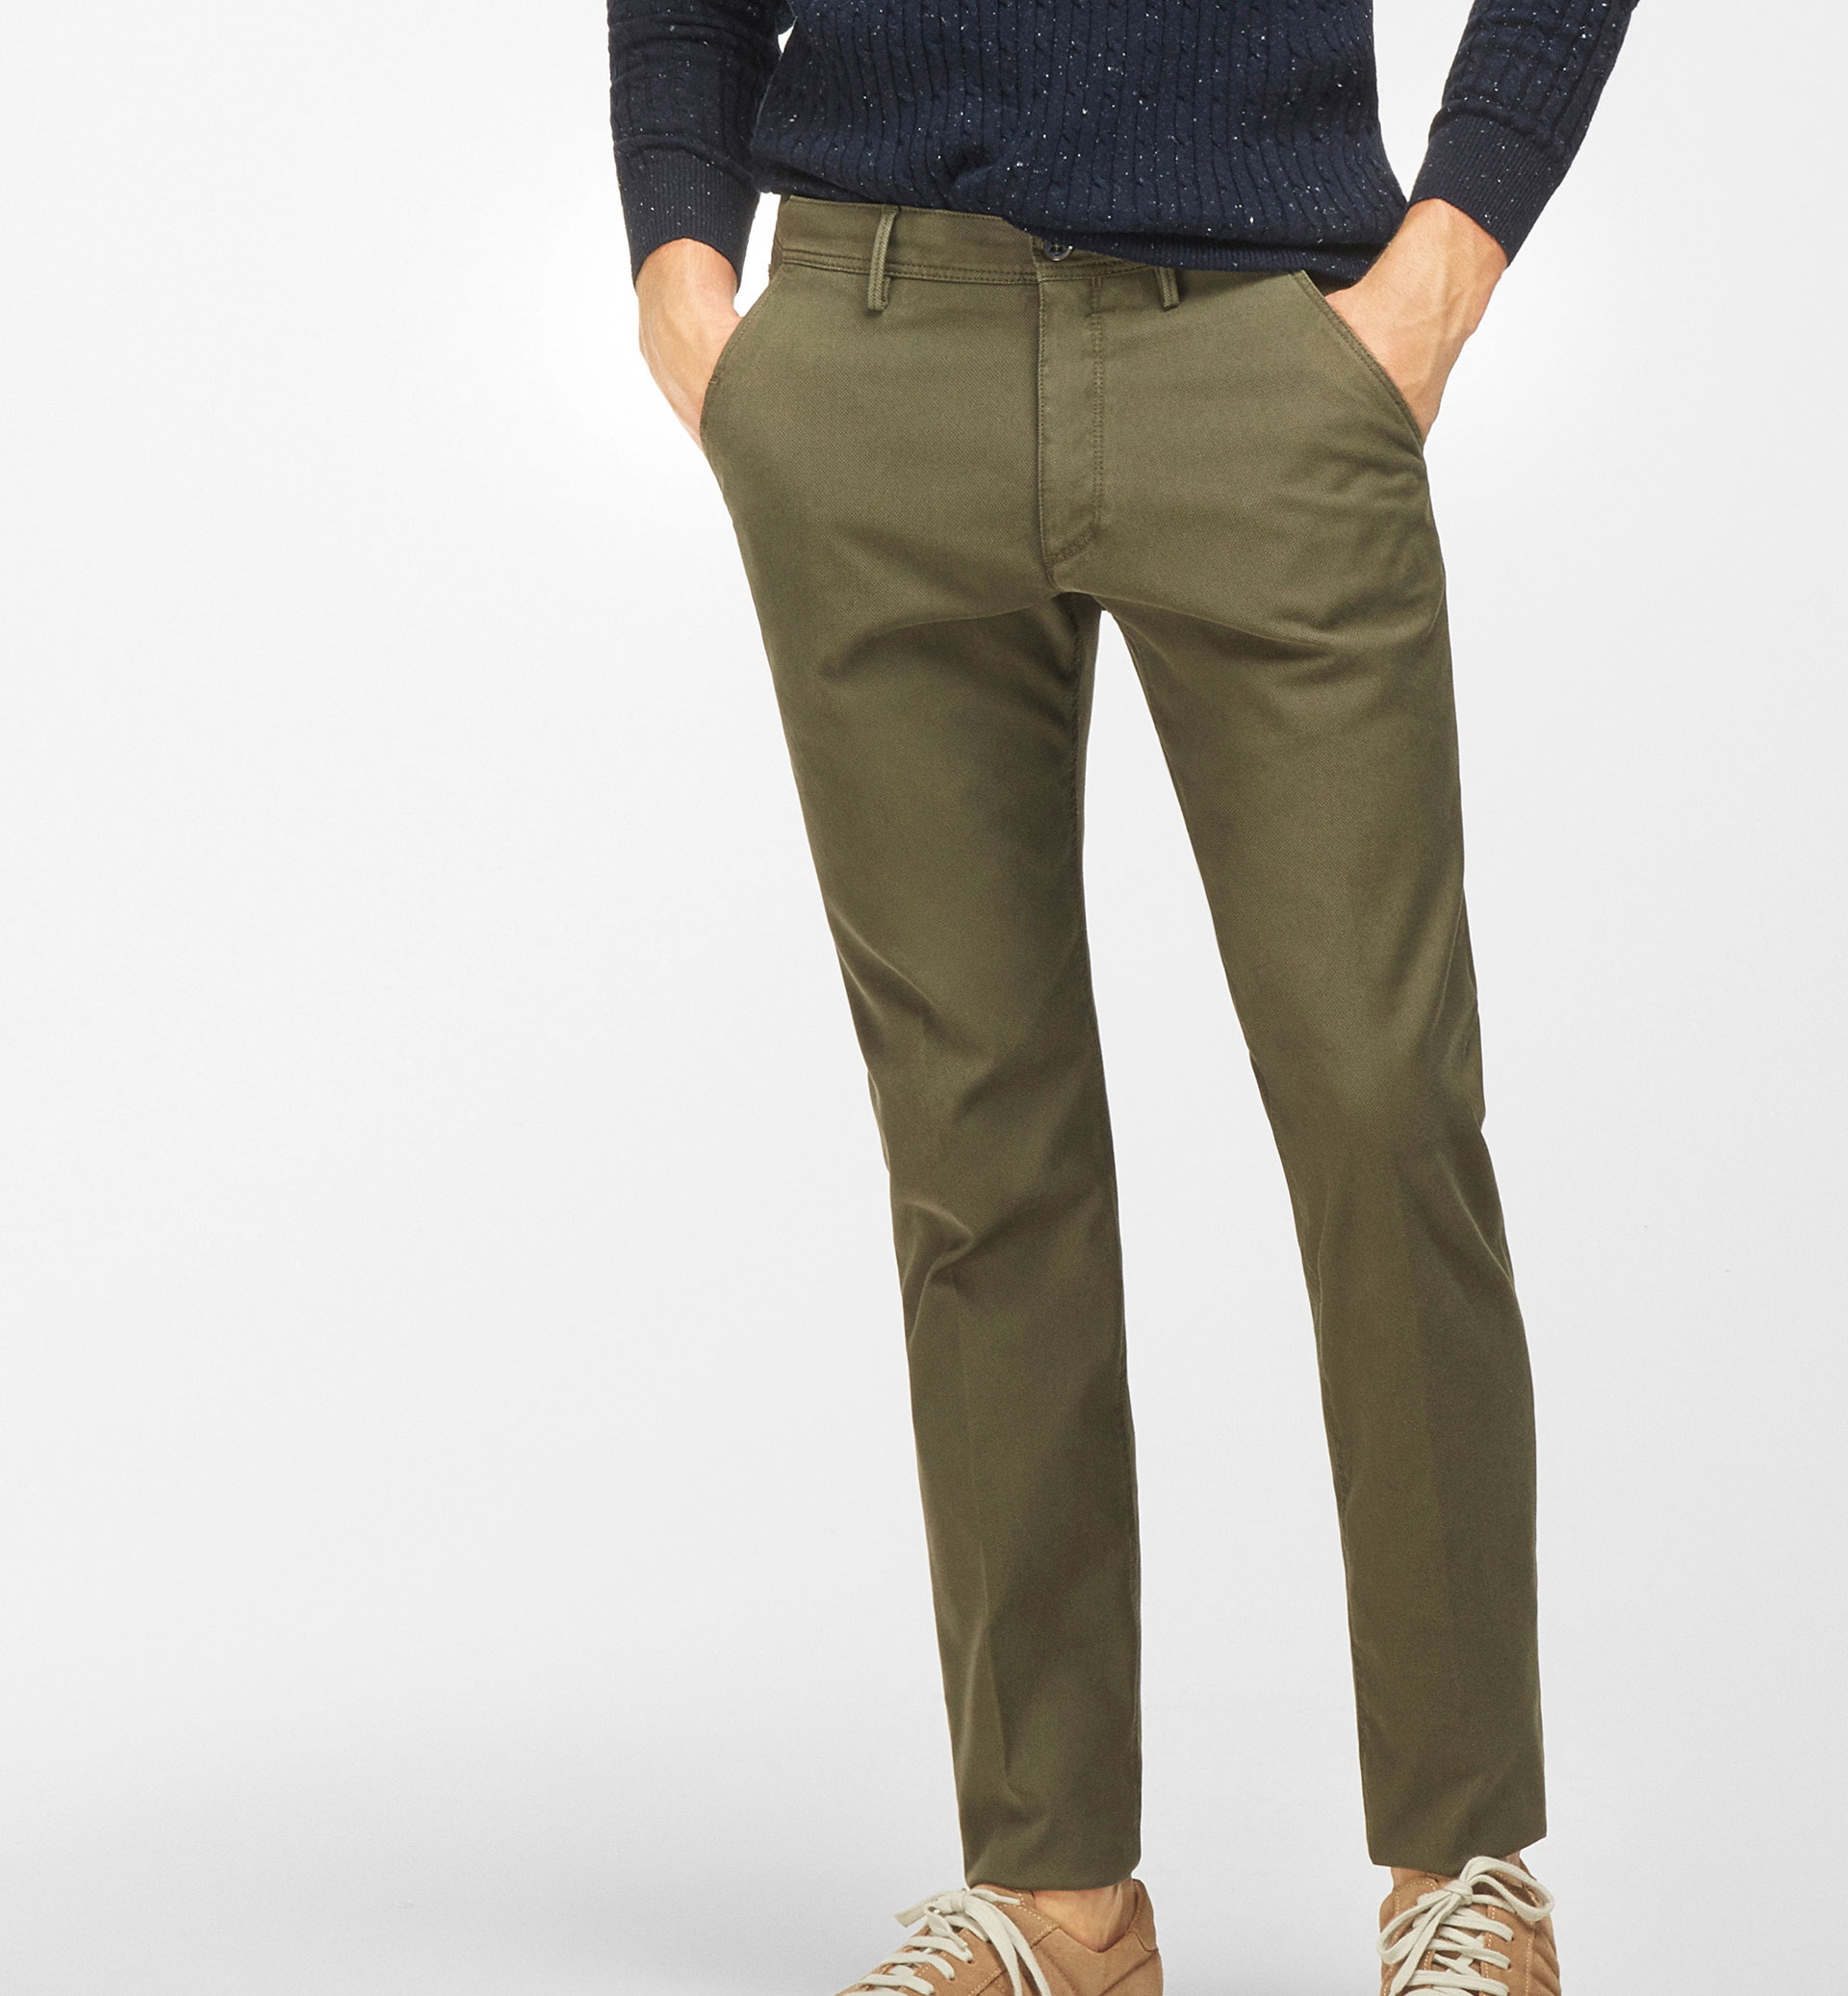 TEXTURED WEAVE CHINOS WITH CONTRAST DETAIL